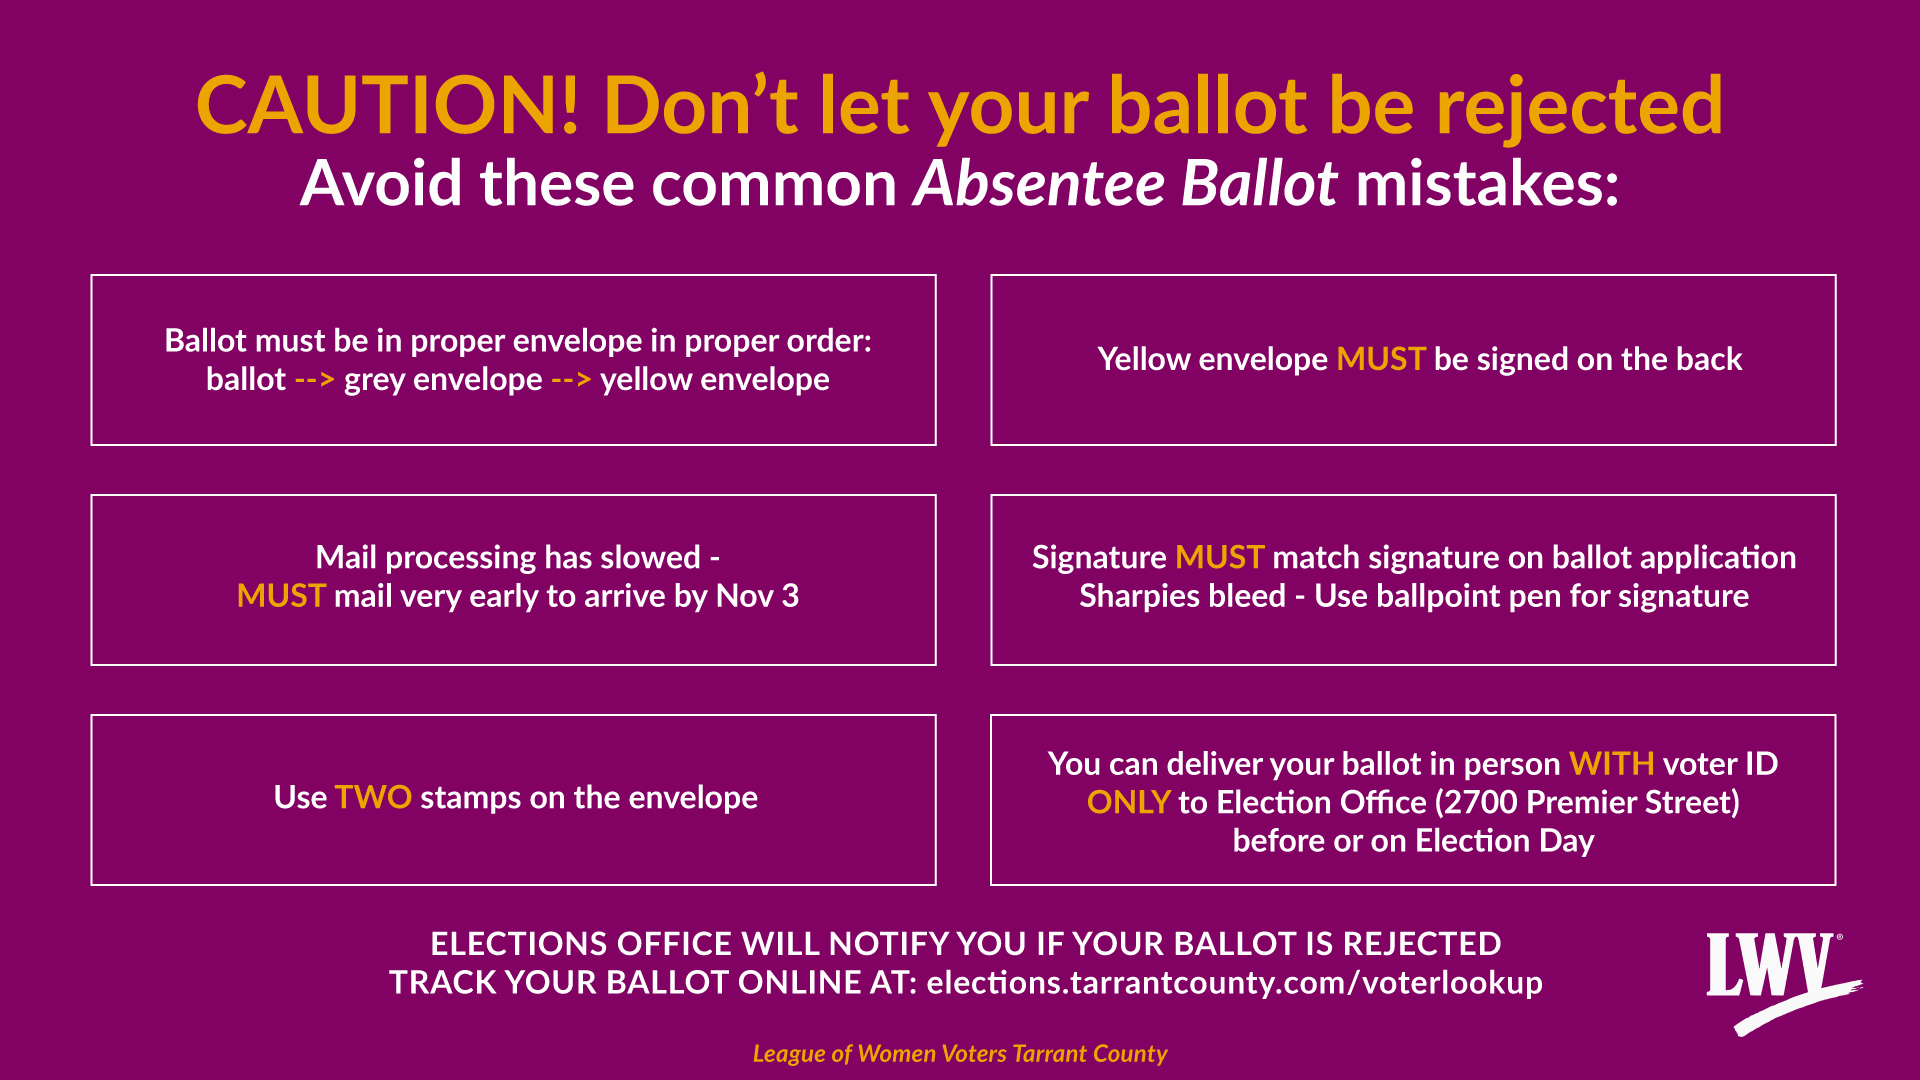 Caution! Don't let your absentee ballot be rejected